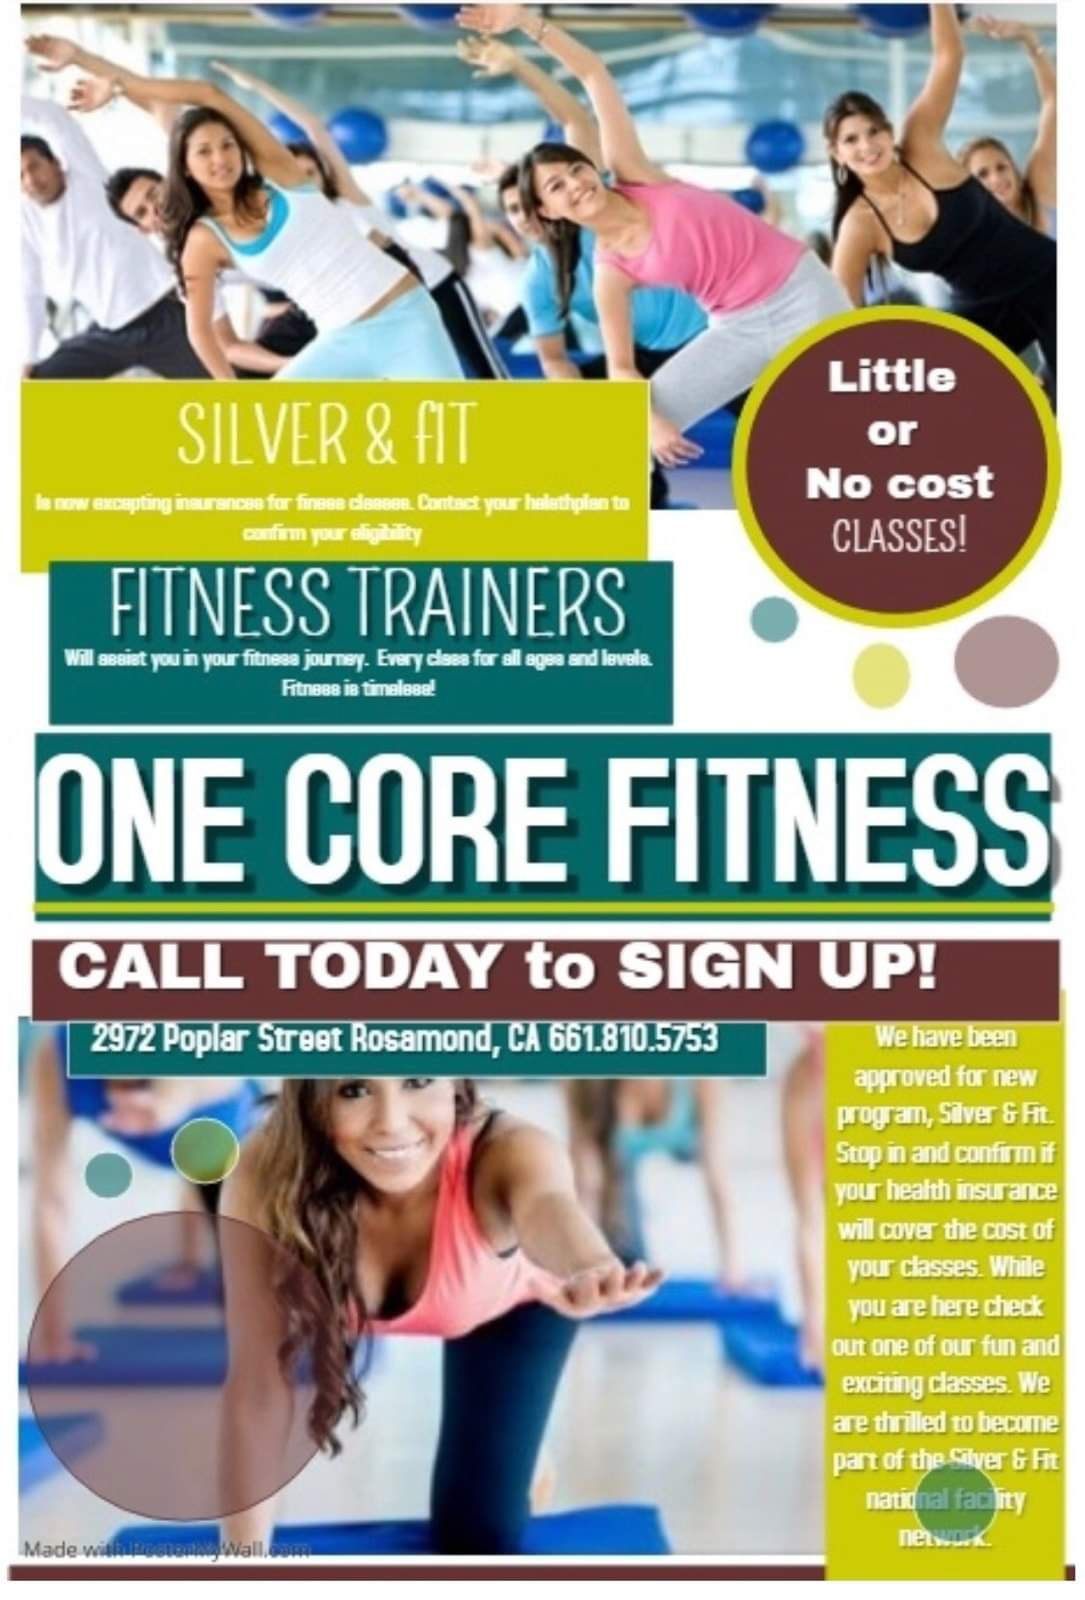 One Core Fitness Silver & Fit